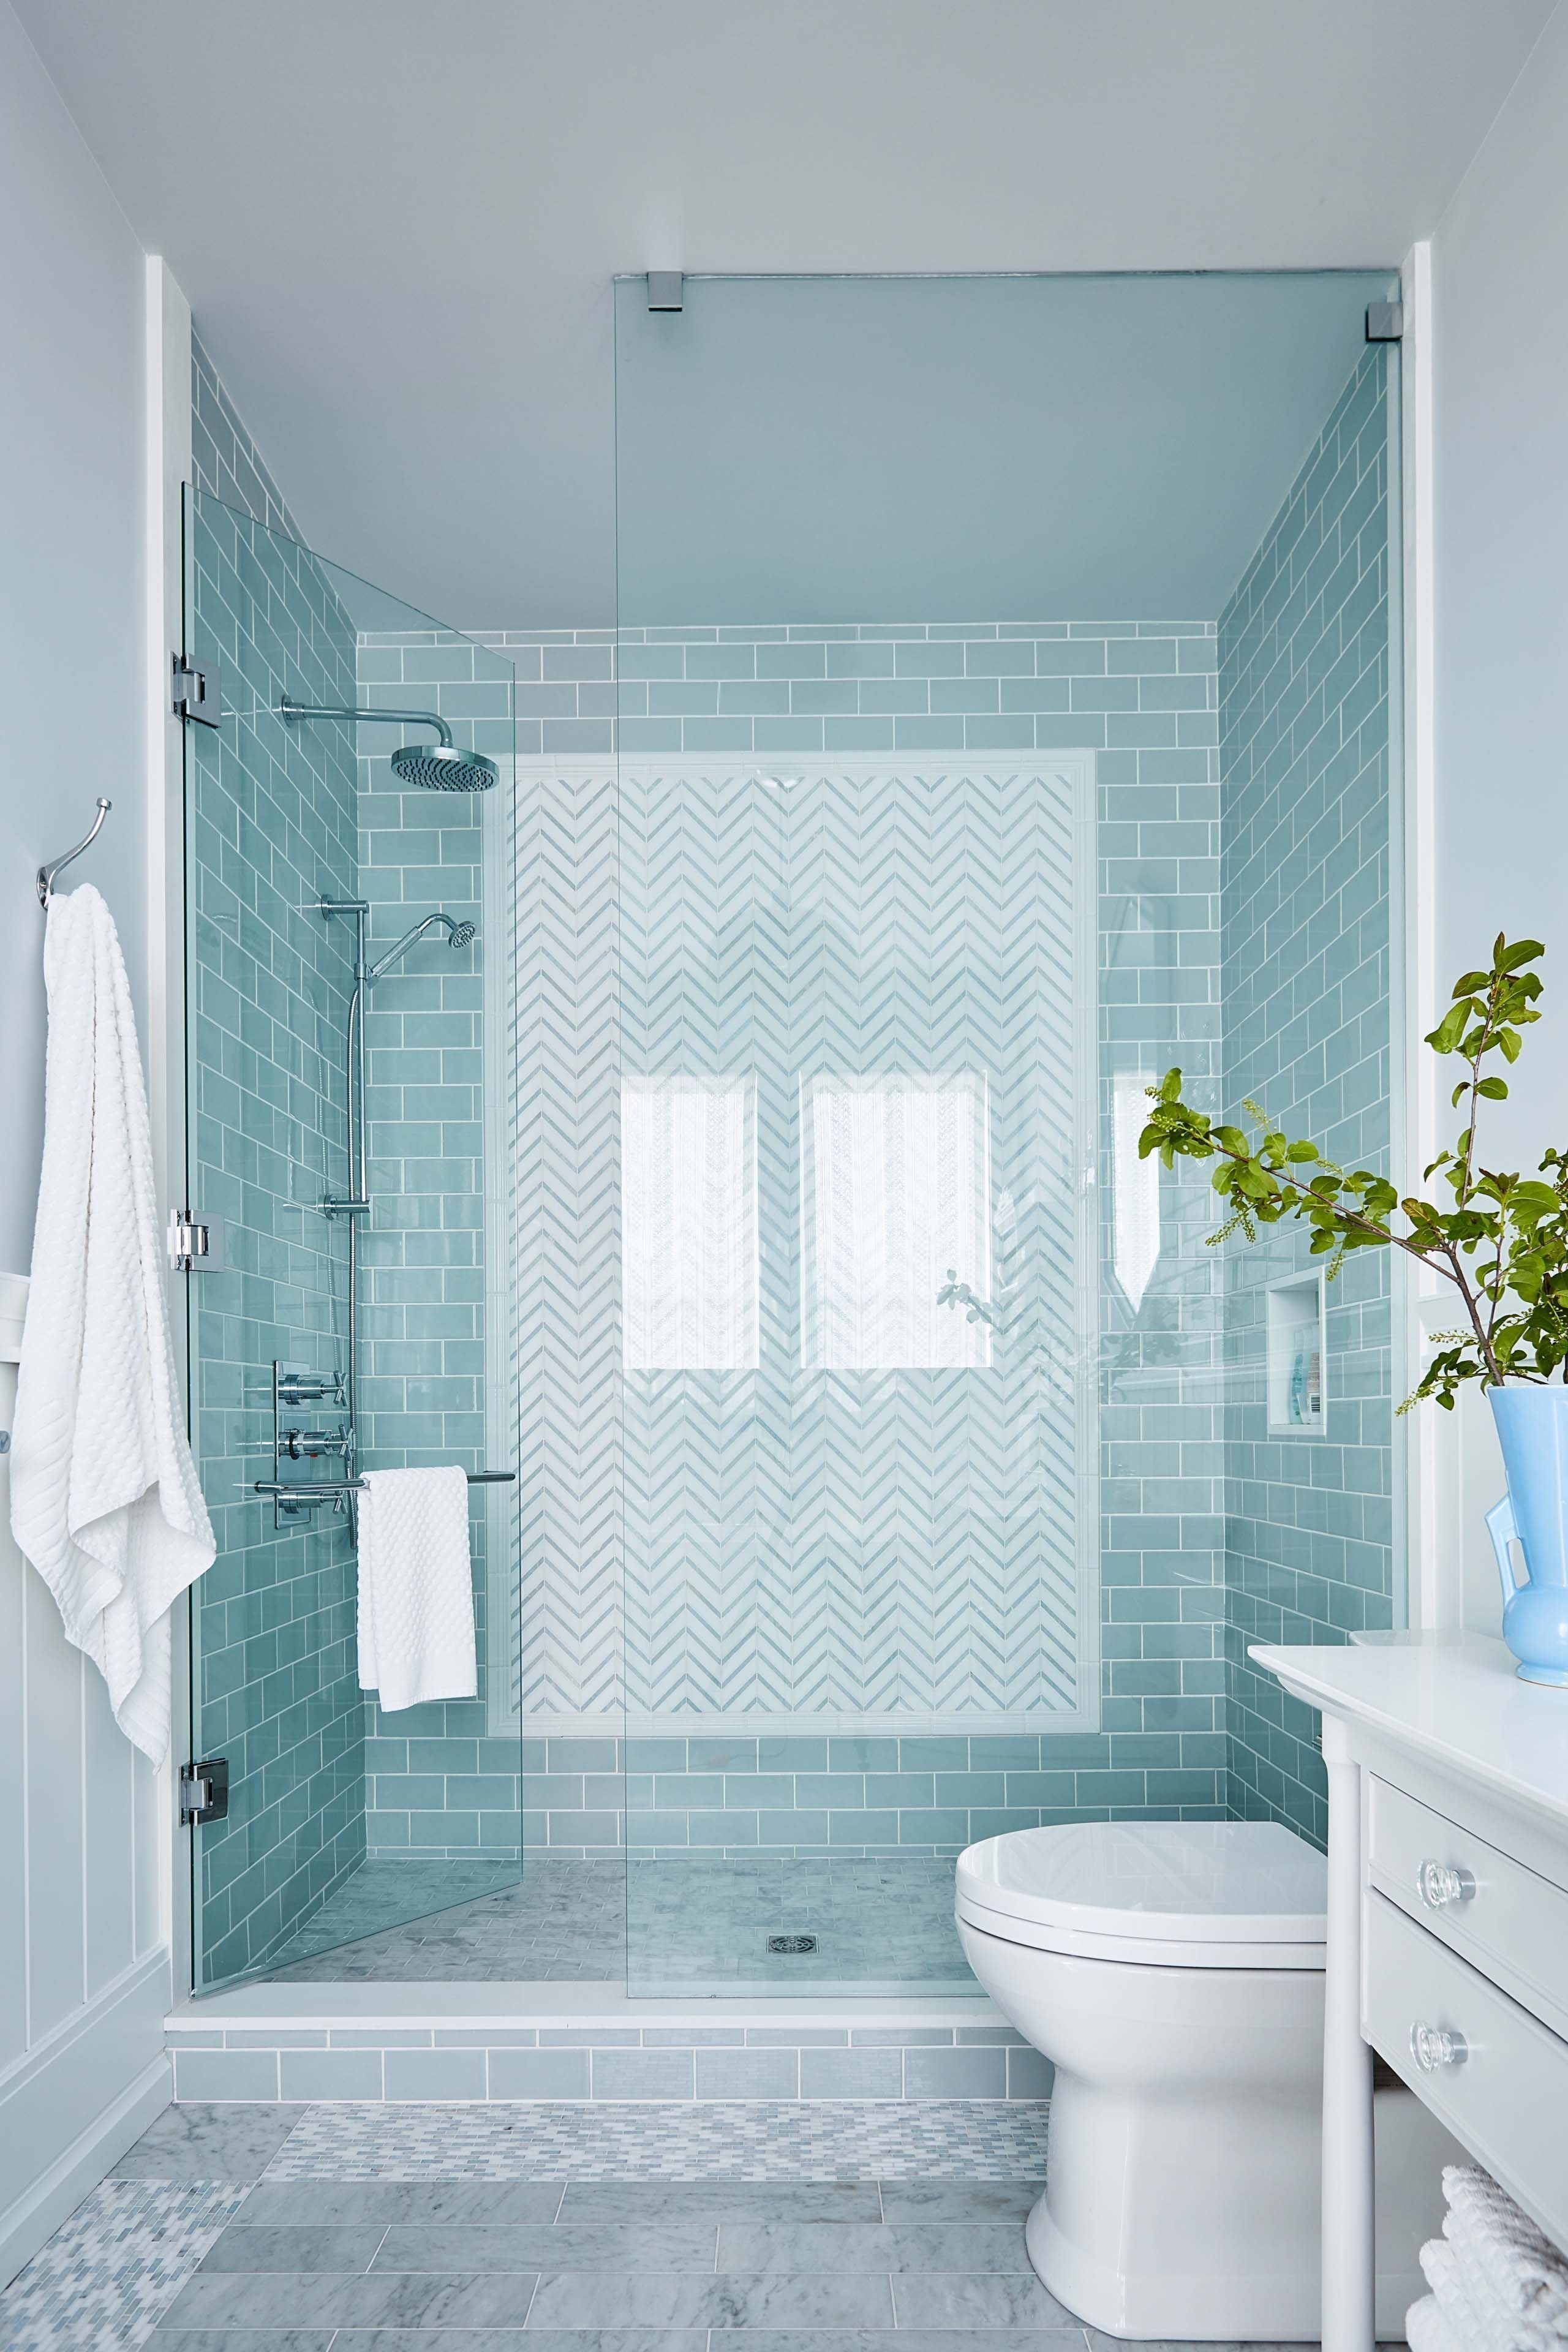 Bathroom Tiles Design Beautiful Sarah Richardson S F The Grid Family Home Pinterest Os Simple Bathroom Designs Bathroom Remodel Master Small Bathroom Remodel